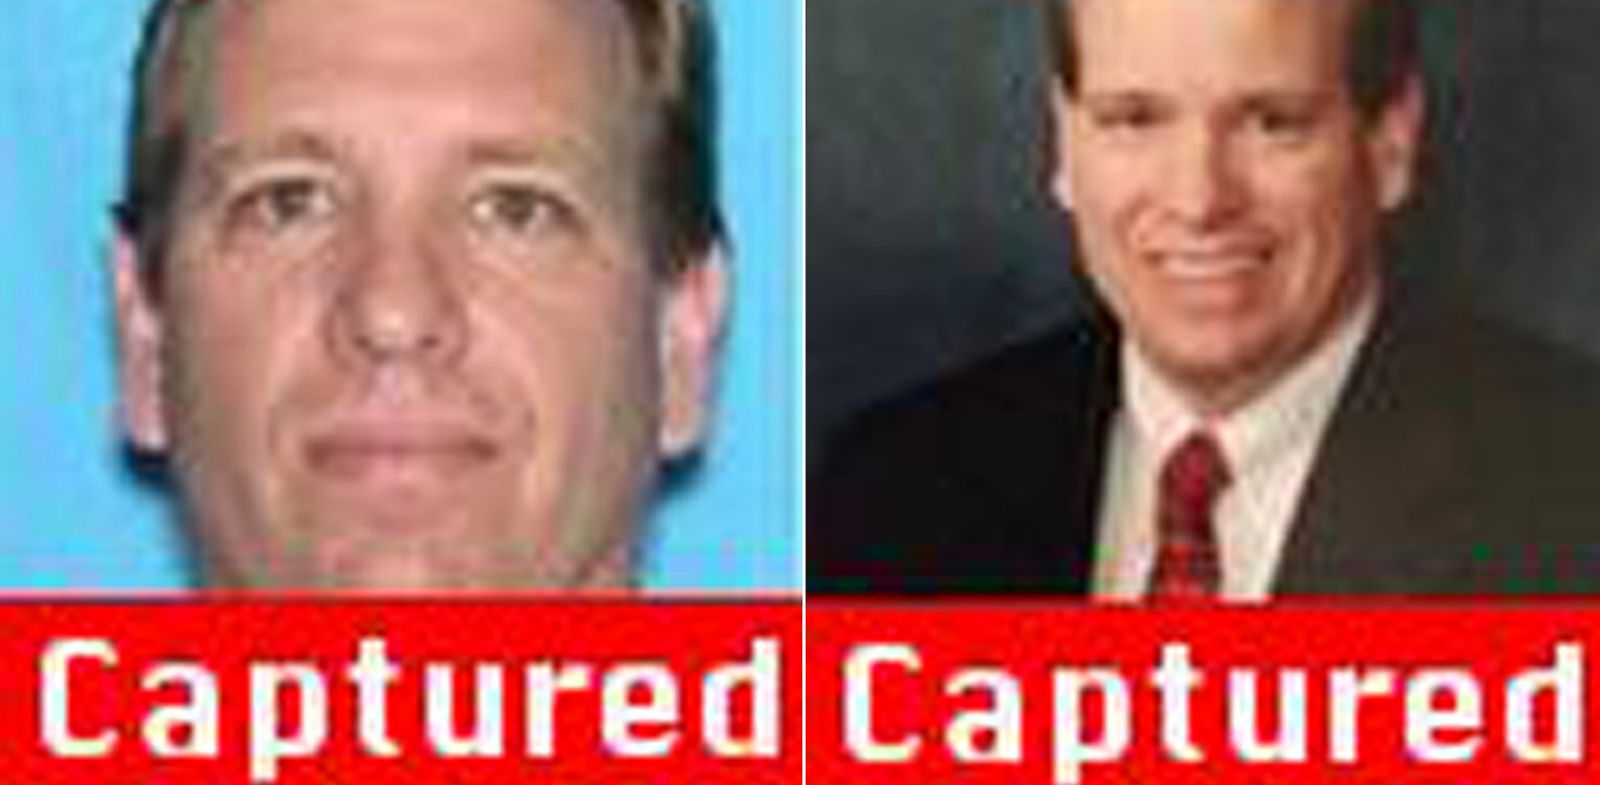 PHOTO: After going missing, Ga. Bank Director Aubrey Lee Price has been arrested.